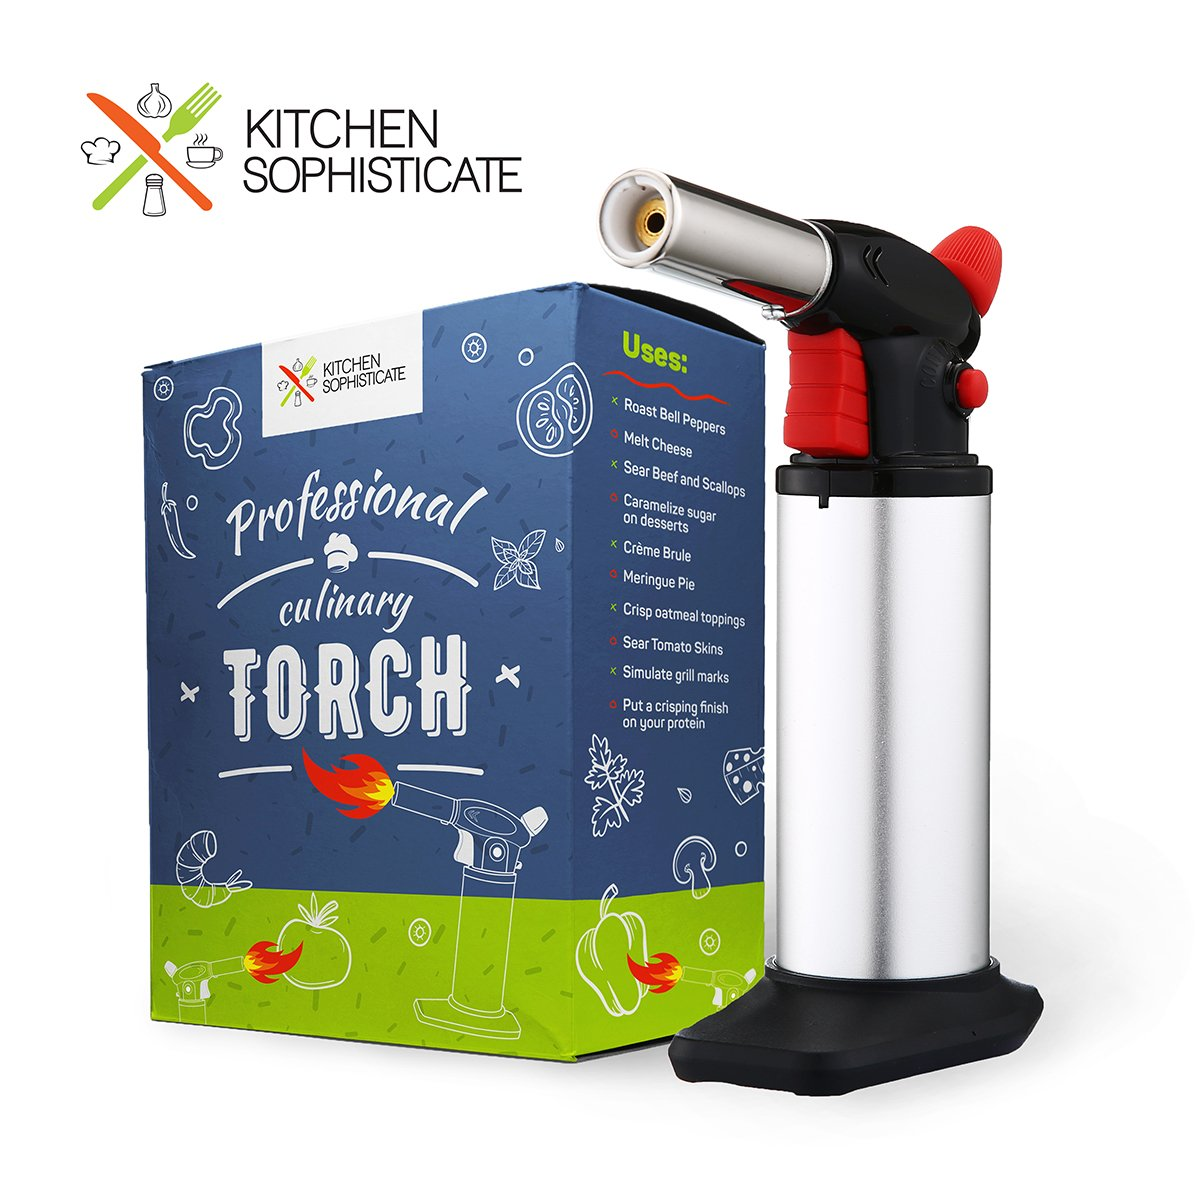 Professional Culinary Torch (Butane) Kitchen Cooking Tool for Searing Food, Meat, Crème Brulee | Adjustable Flame, Safety Lock | Chef Craftsmanship, Home Use